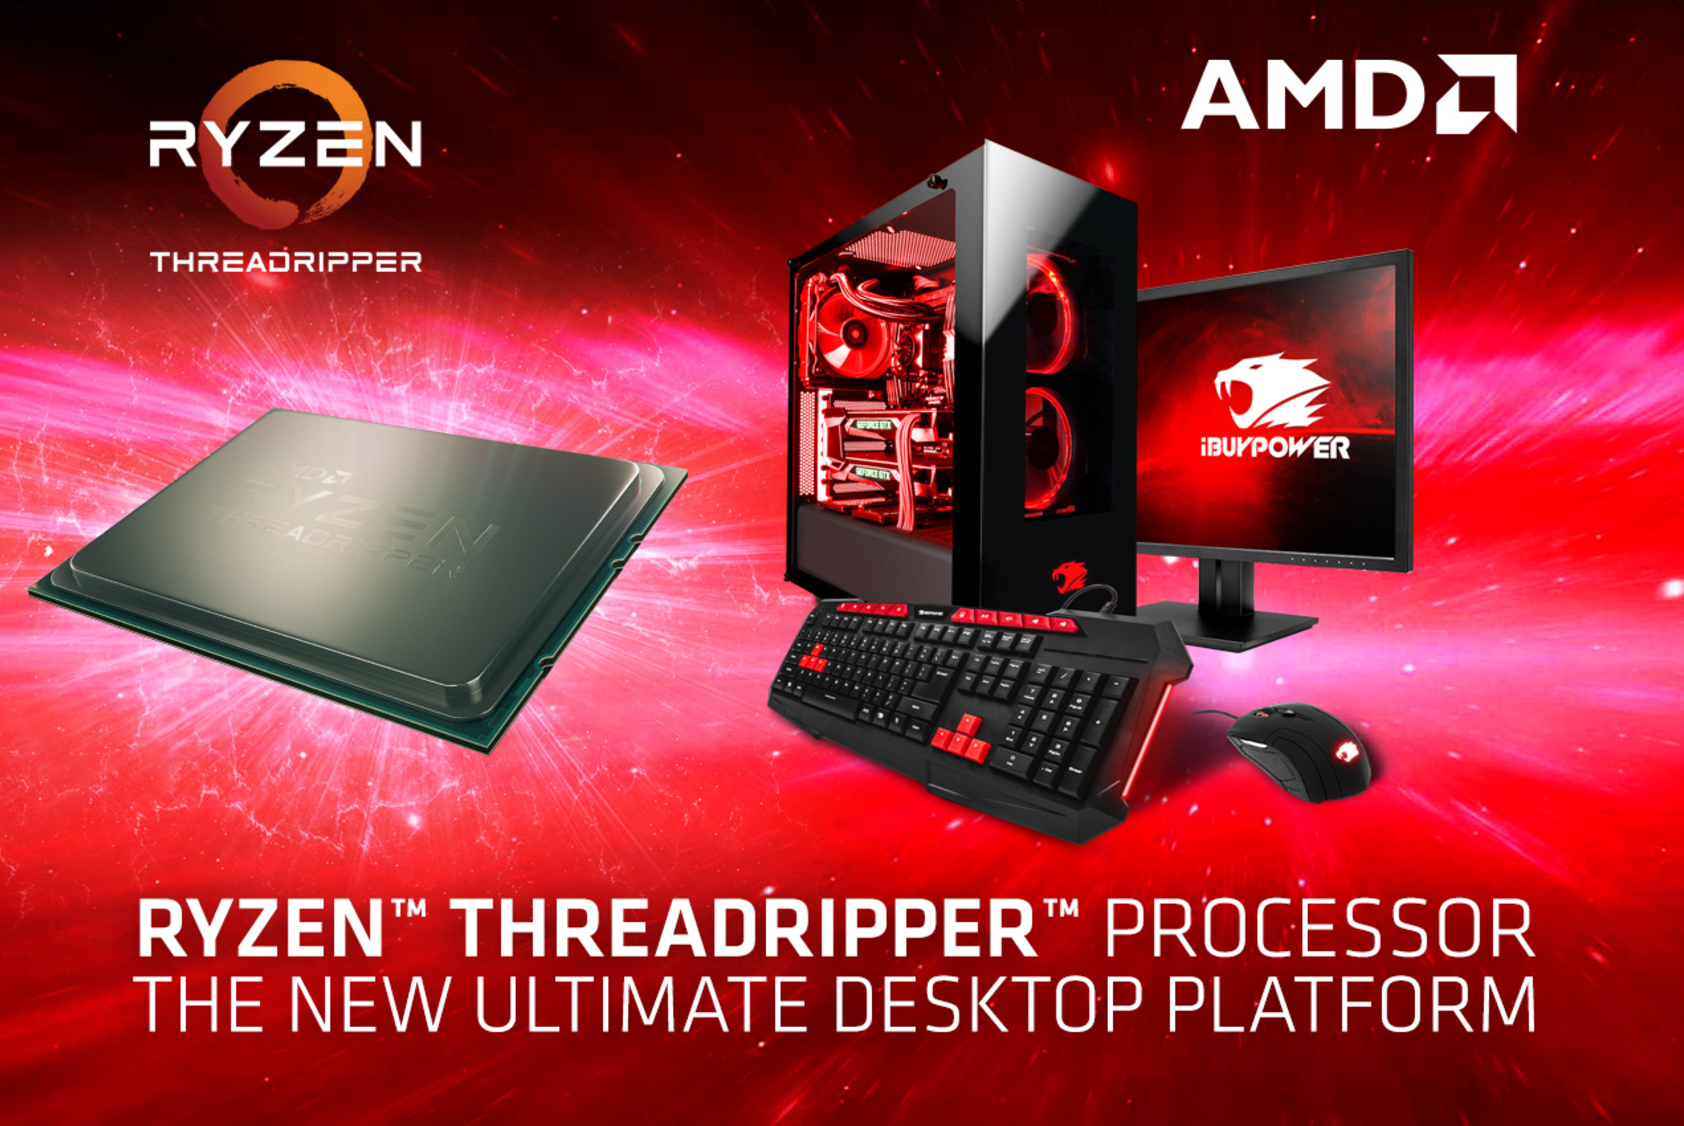 AMD Ryzen Threadripper X399 HEDT Systems Can Now Be Purchased